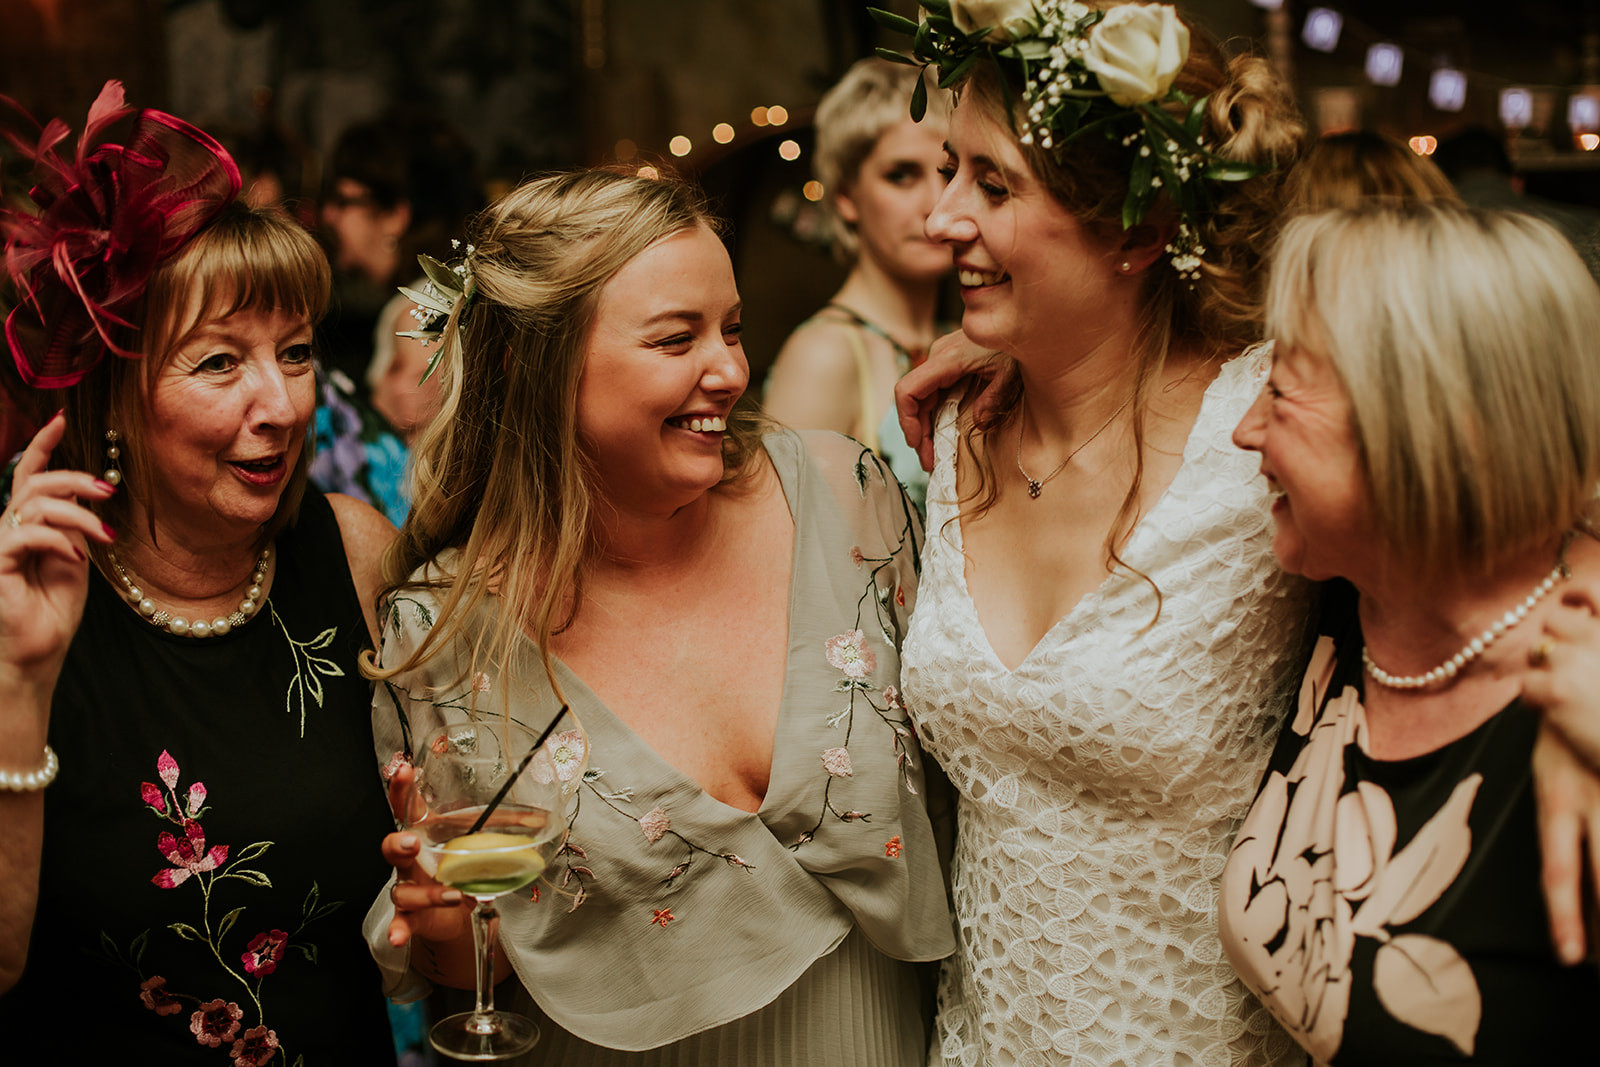 the bride and her friends laughing together